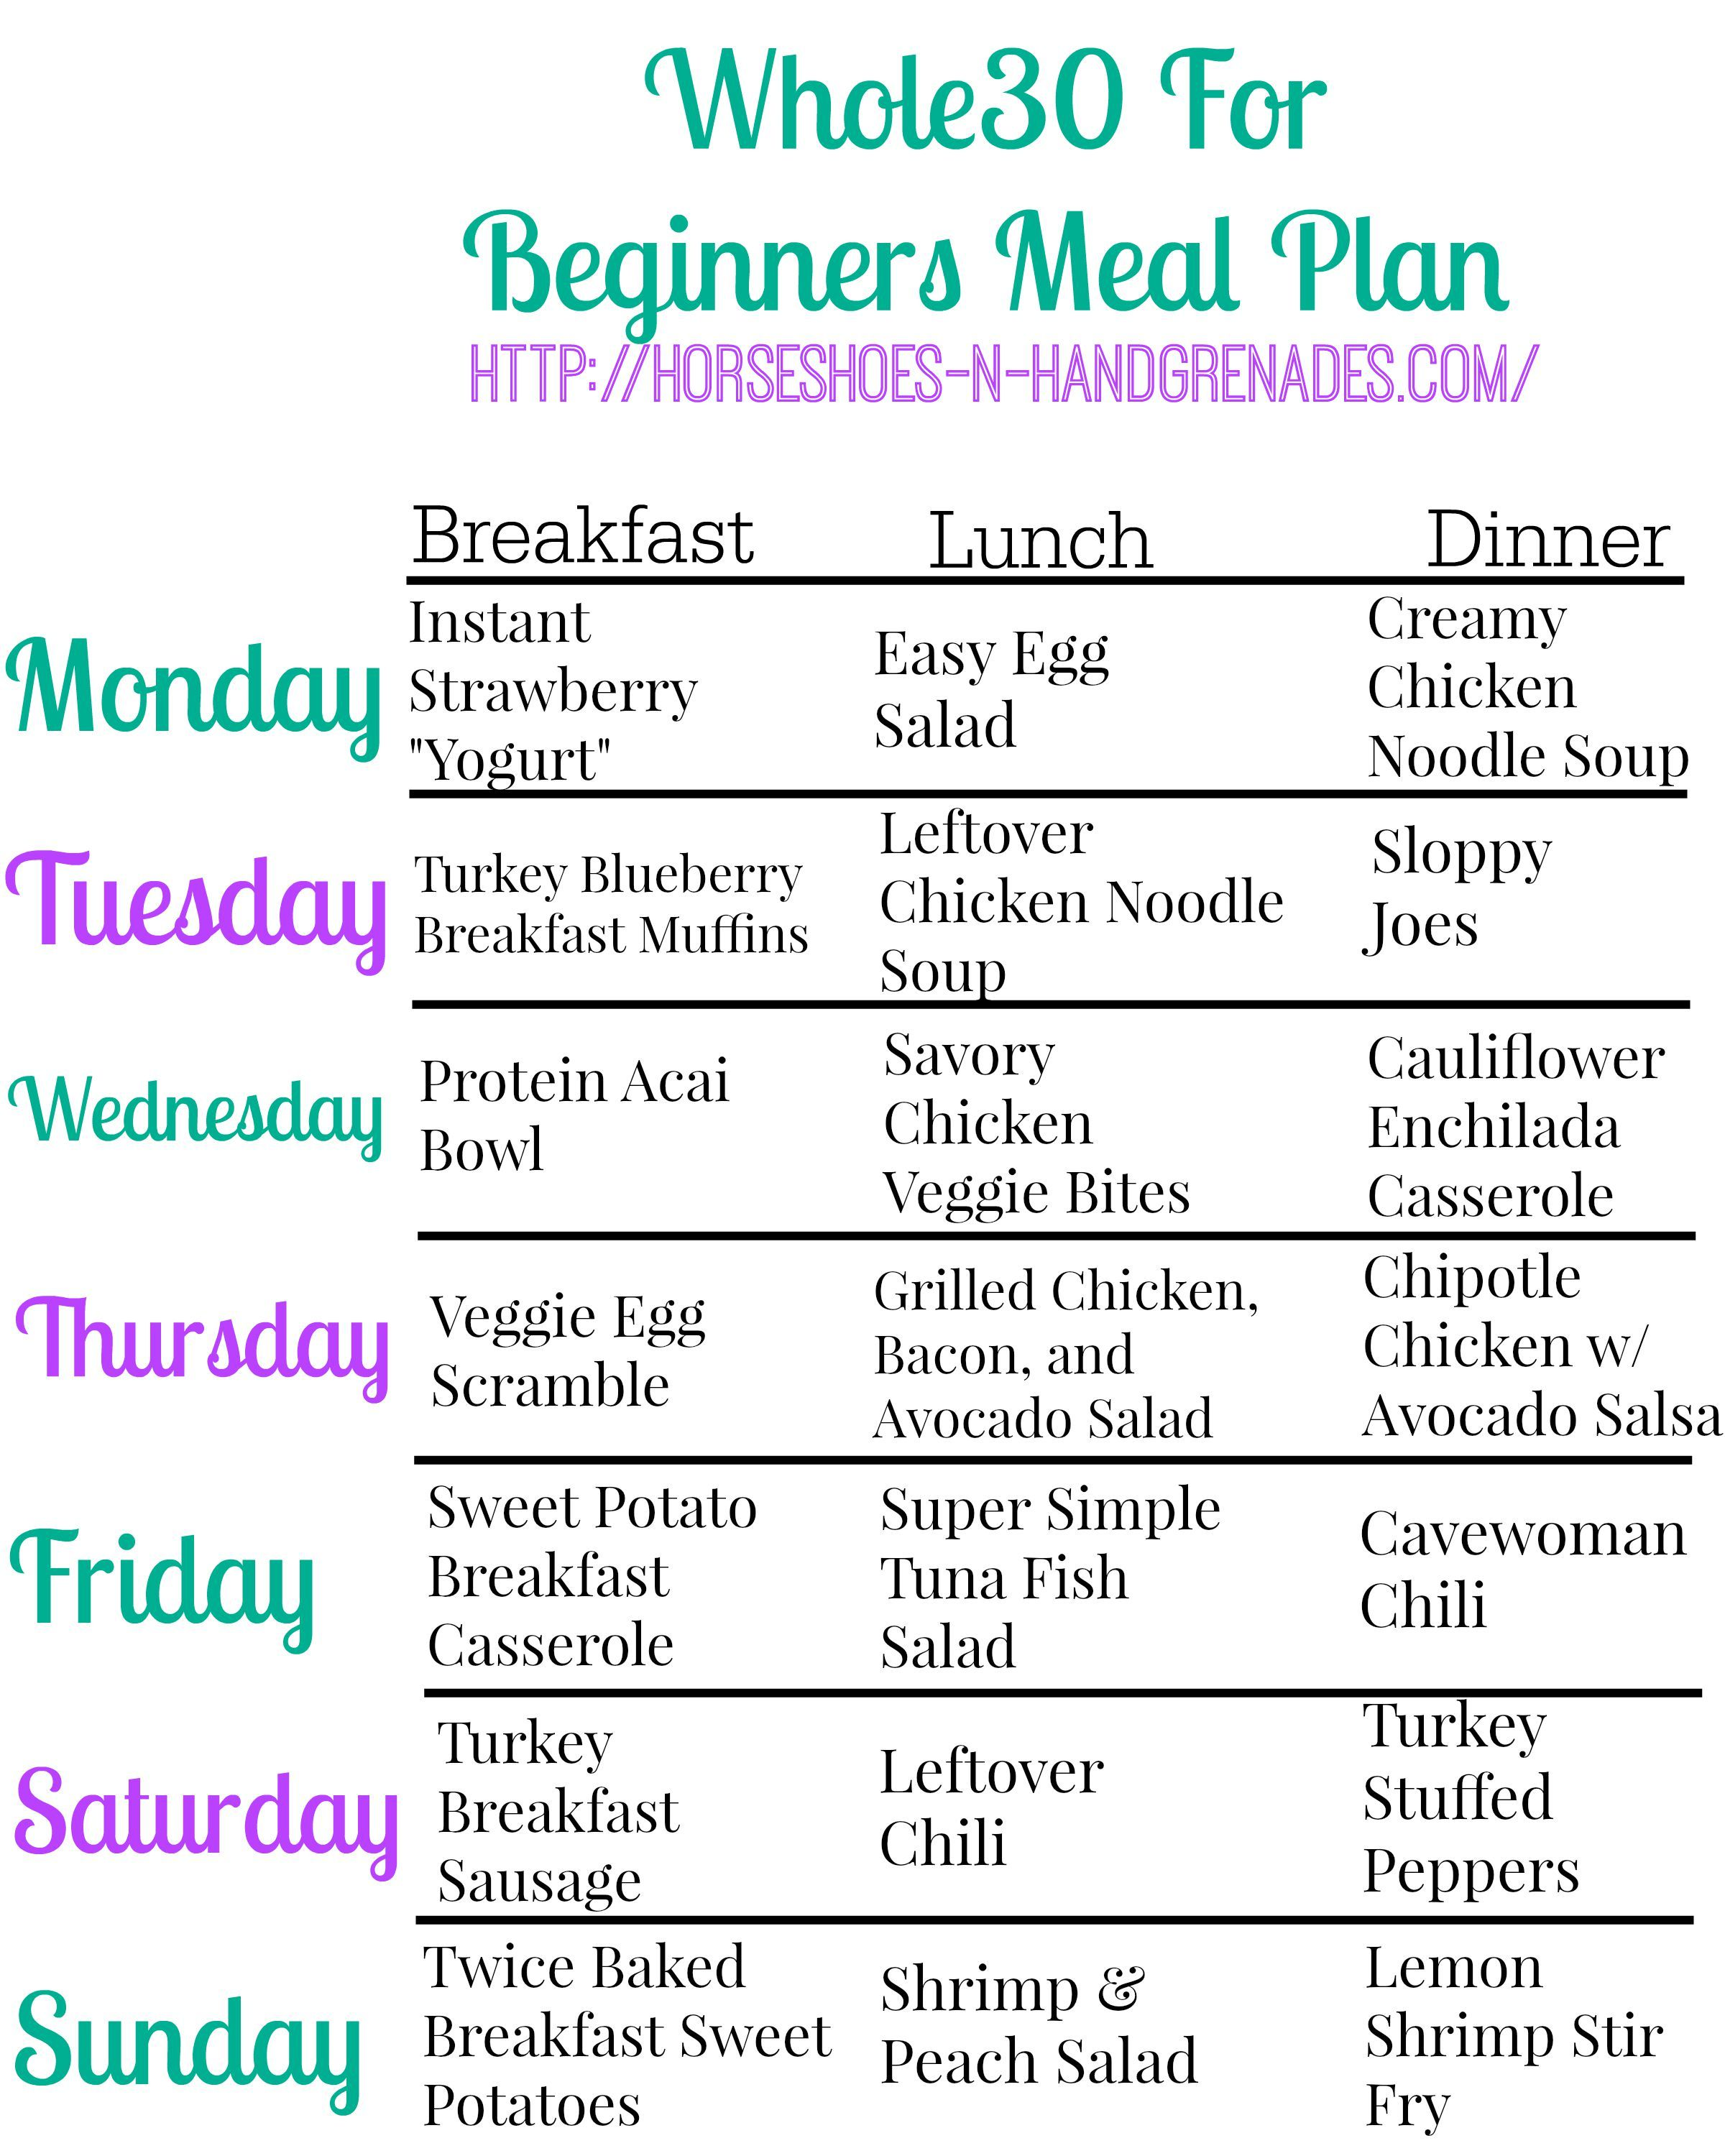 Whole30 For Beginners Weekly Meal Plan Whole 30 meal